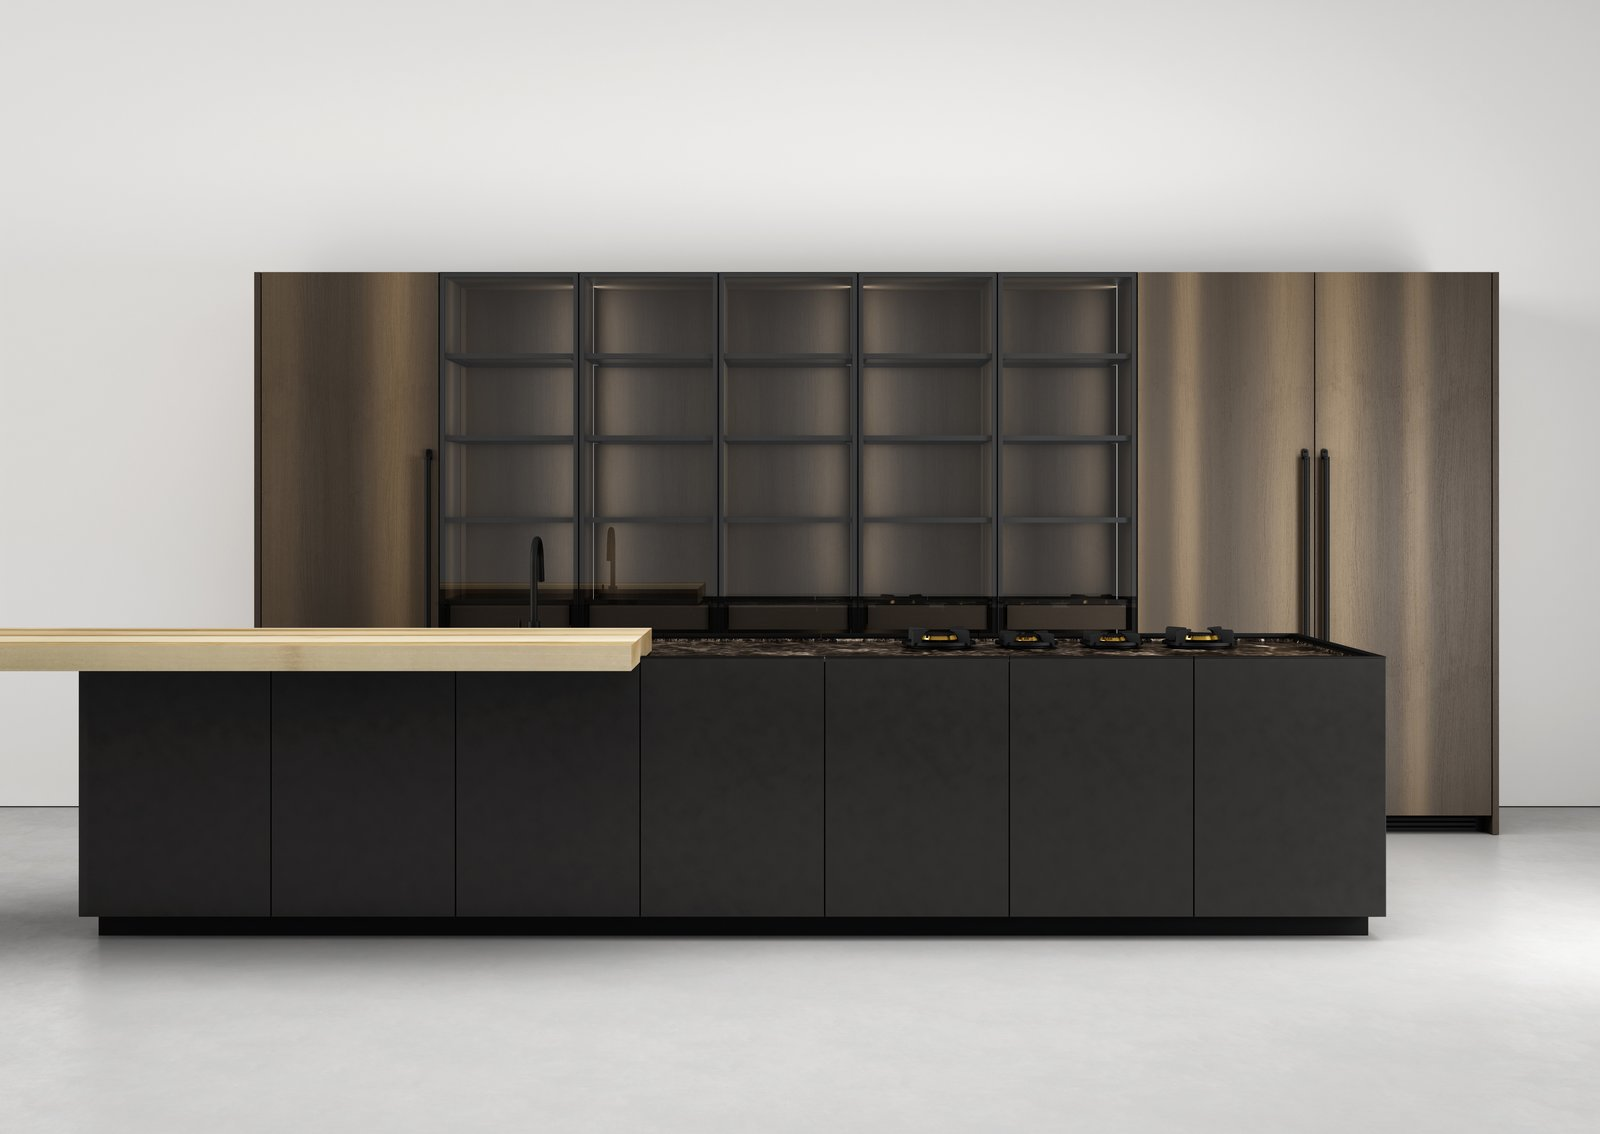 Boffi  Photo 10 of 32 in Watch Out For These Two Kitchen and Bath Trends in 2018